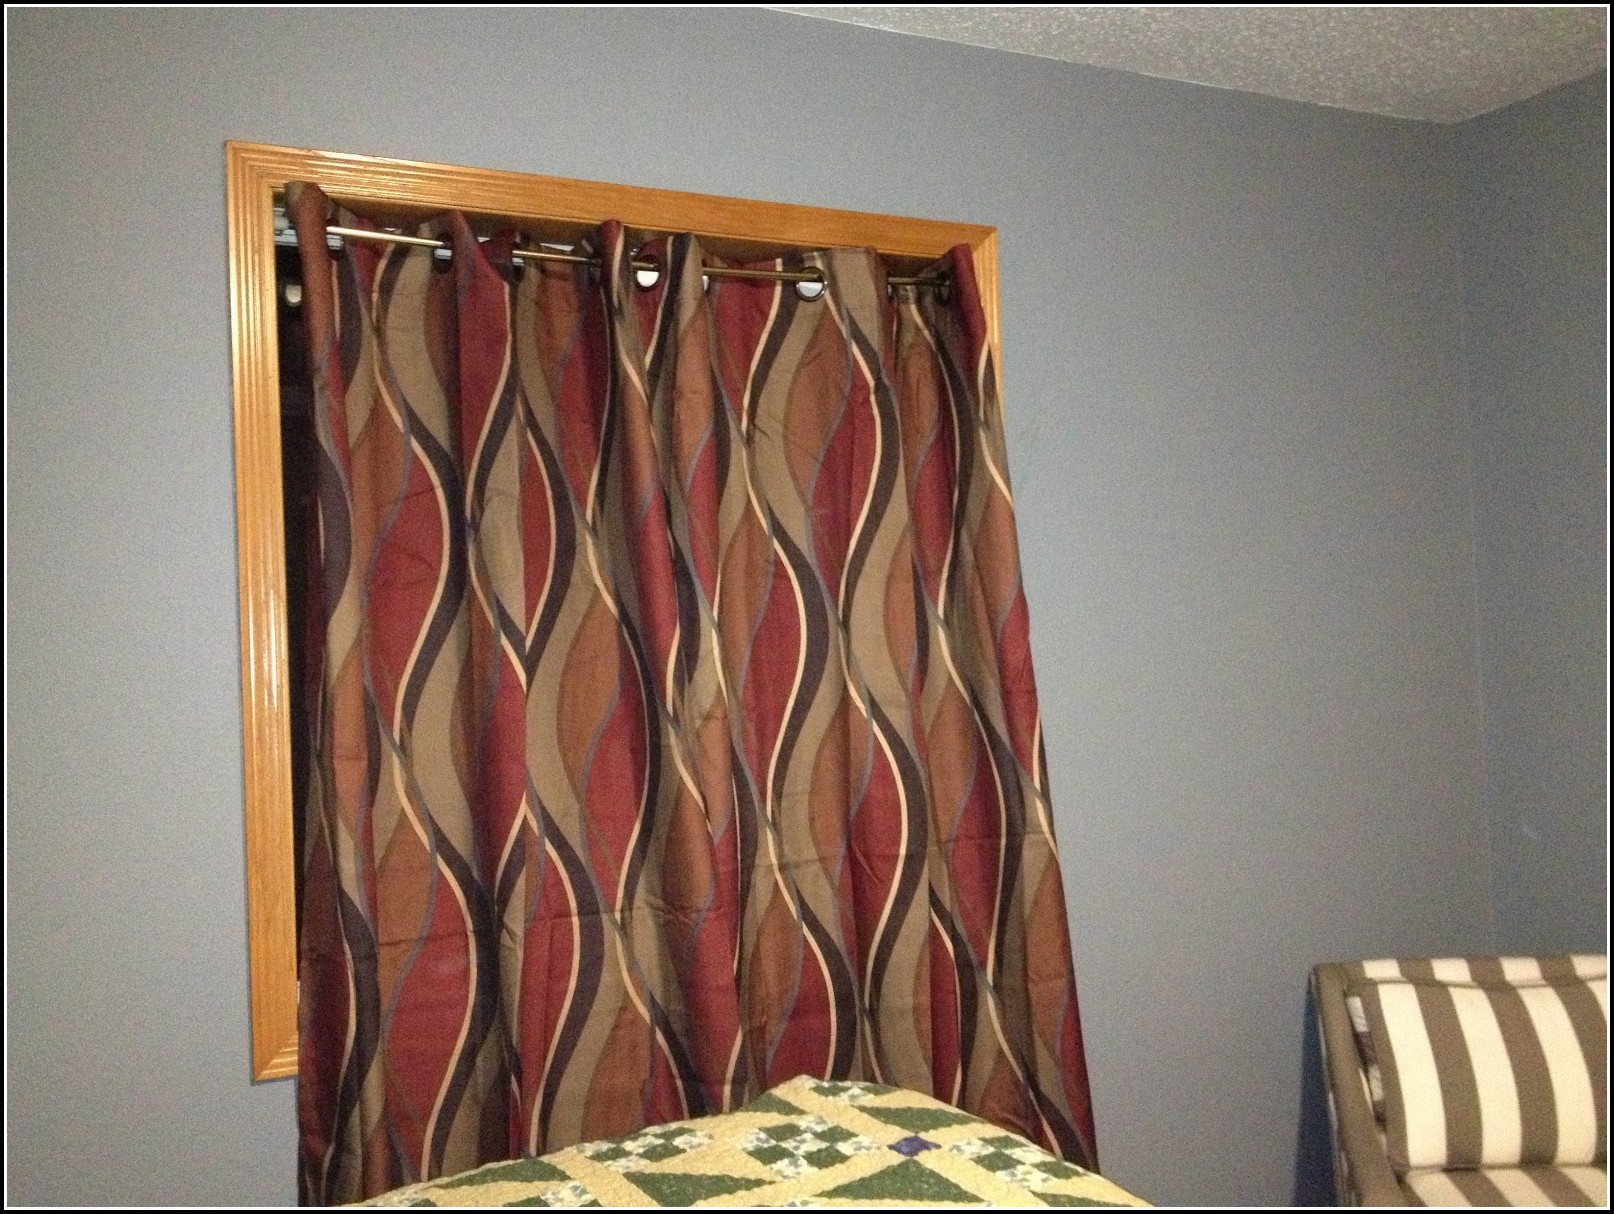 10 Foot Tension Curtain Rod